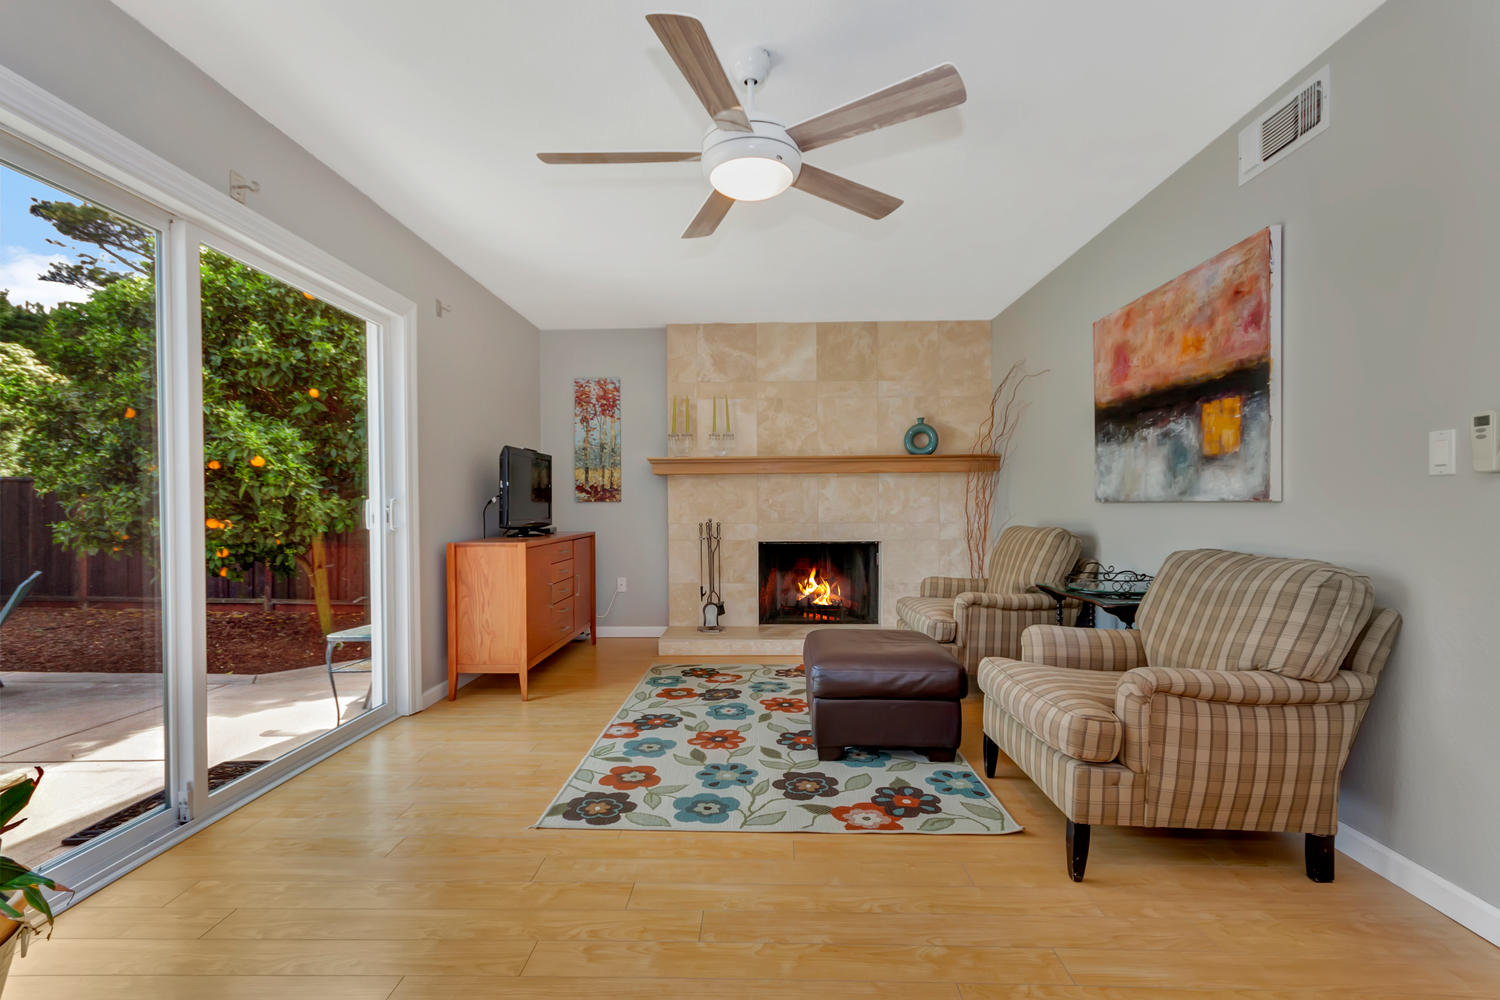 355 W Seaview Dr Benicia CA-large-011-32-Family Room 1a-1500x1000-72dpi.jpg